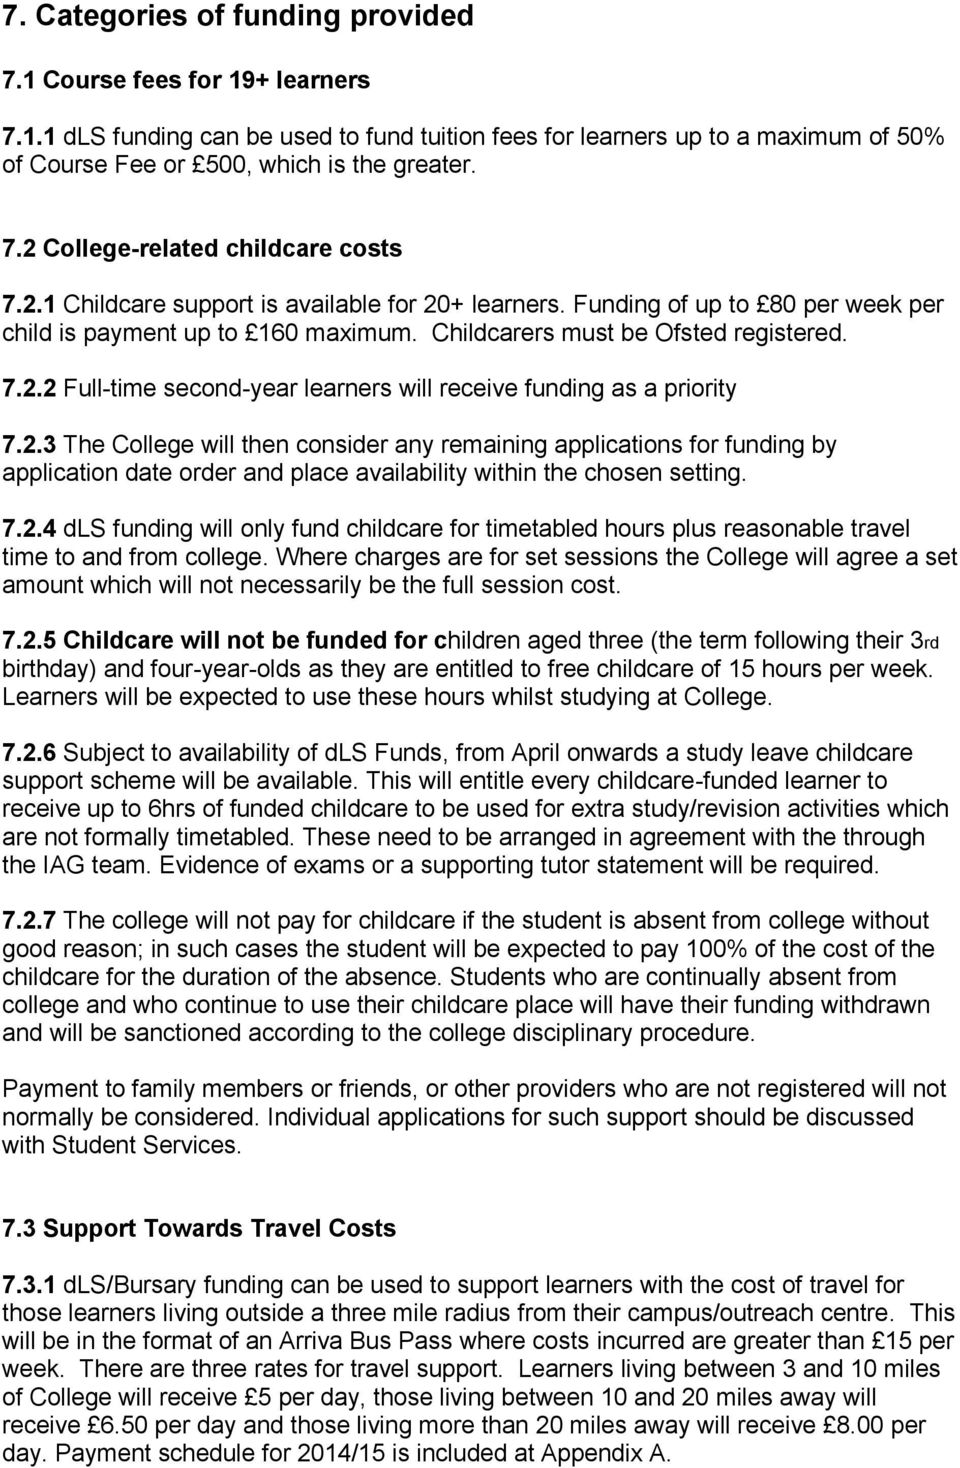 2.3 The College will then consider any remaining applications for funding by application date order and place availability within the chosen setting. 7.2.4 dls funding will only fund childcare for timetabled hours plus reasonable travel time to and from college.